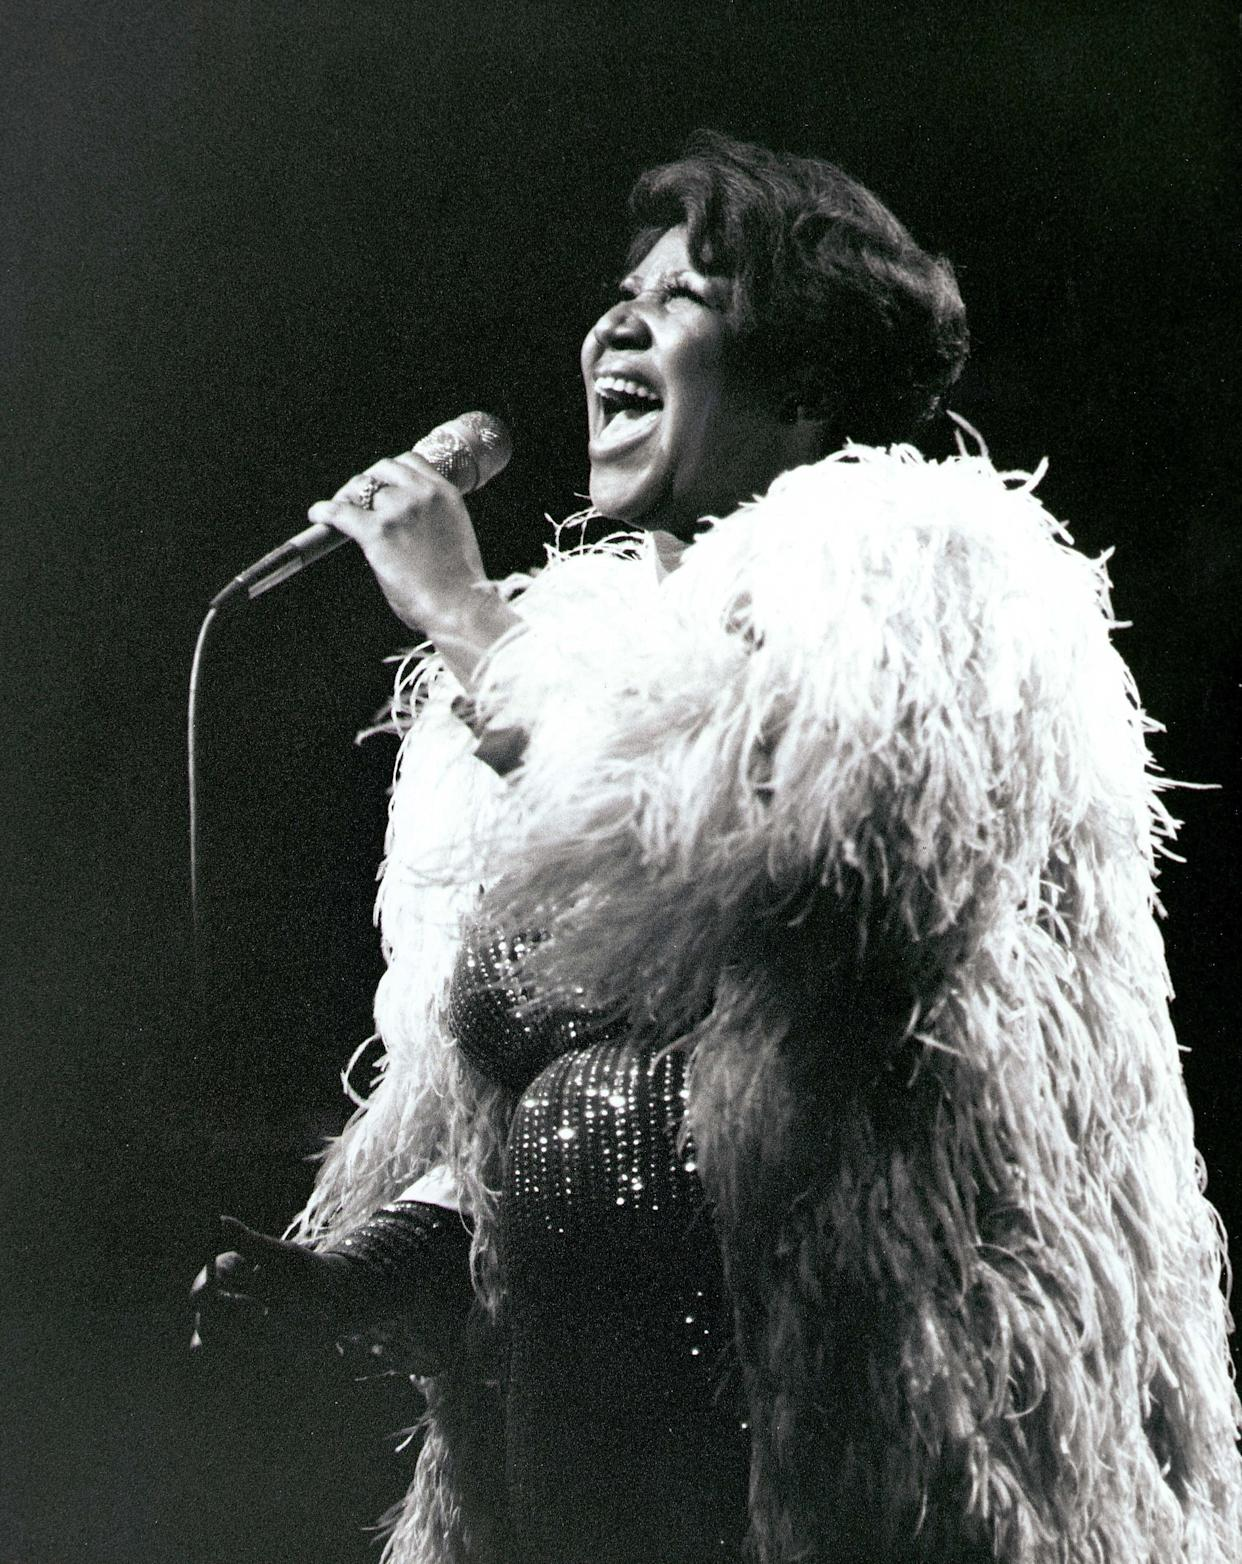 Performing onstage at the New Victoria Theater in the United Kingdom circa 1980.